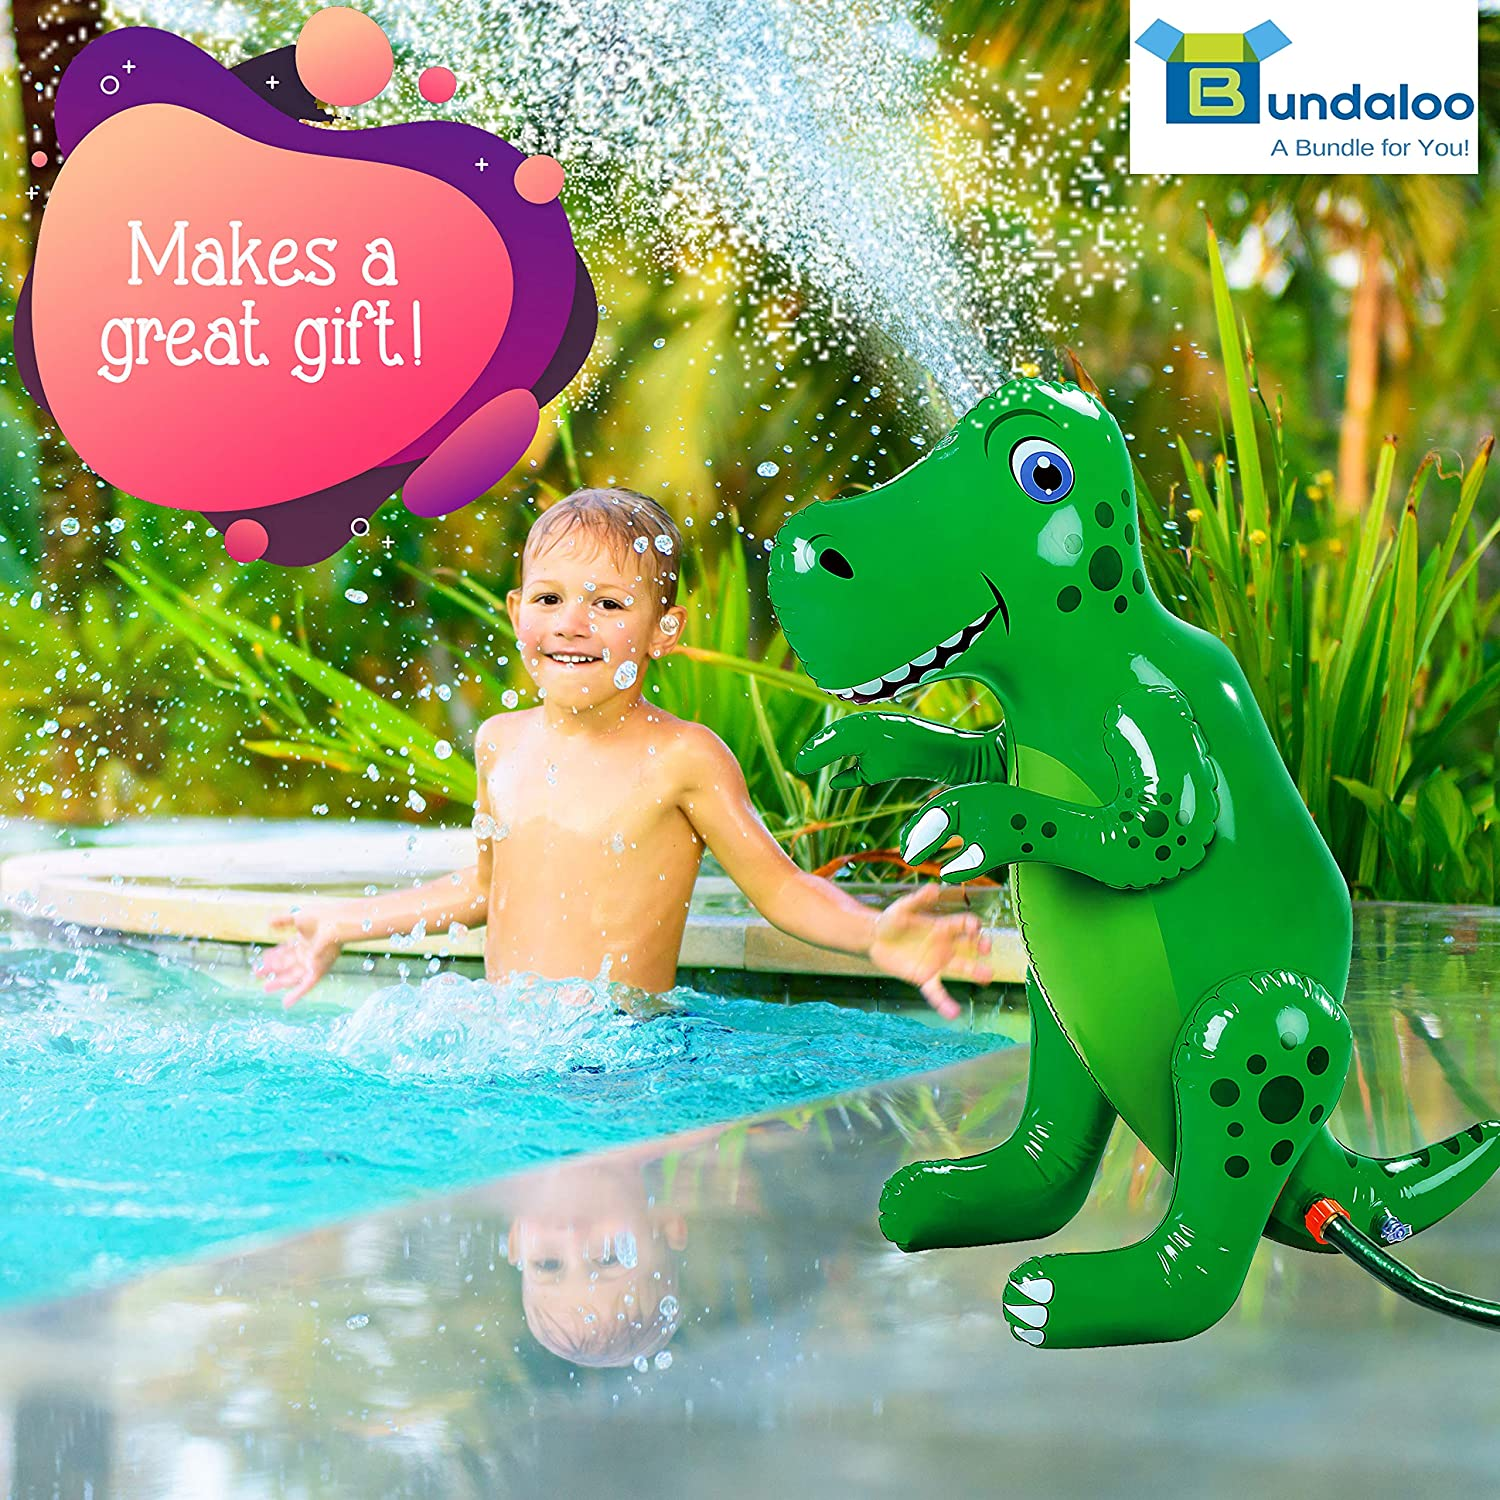 Bundaloo Inflatable Dinosaur Sprinkler Park Fun Outdoor Water Toy for Boys and Girls Age 3 and Up- Beach Backyard Splash Activities for Summer Lawn Decorative Dino-Themed Birthday Party Games